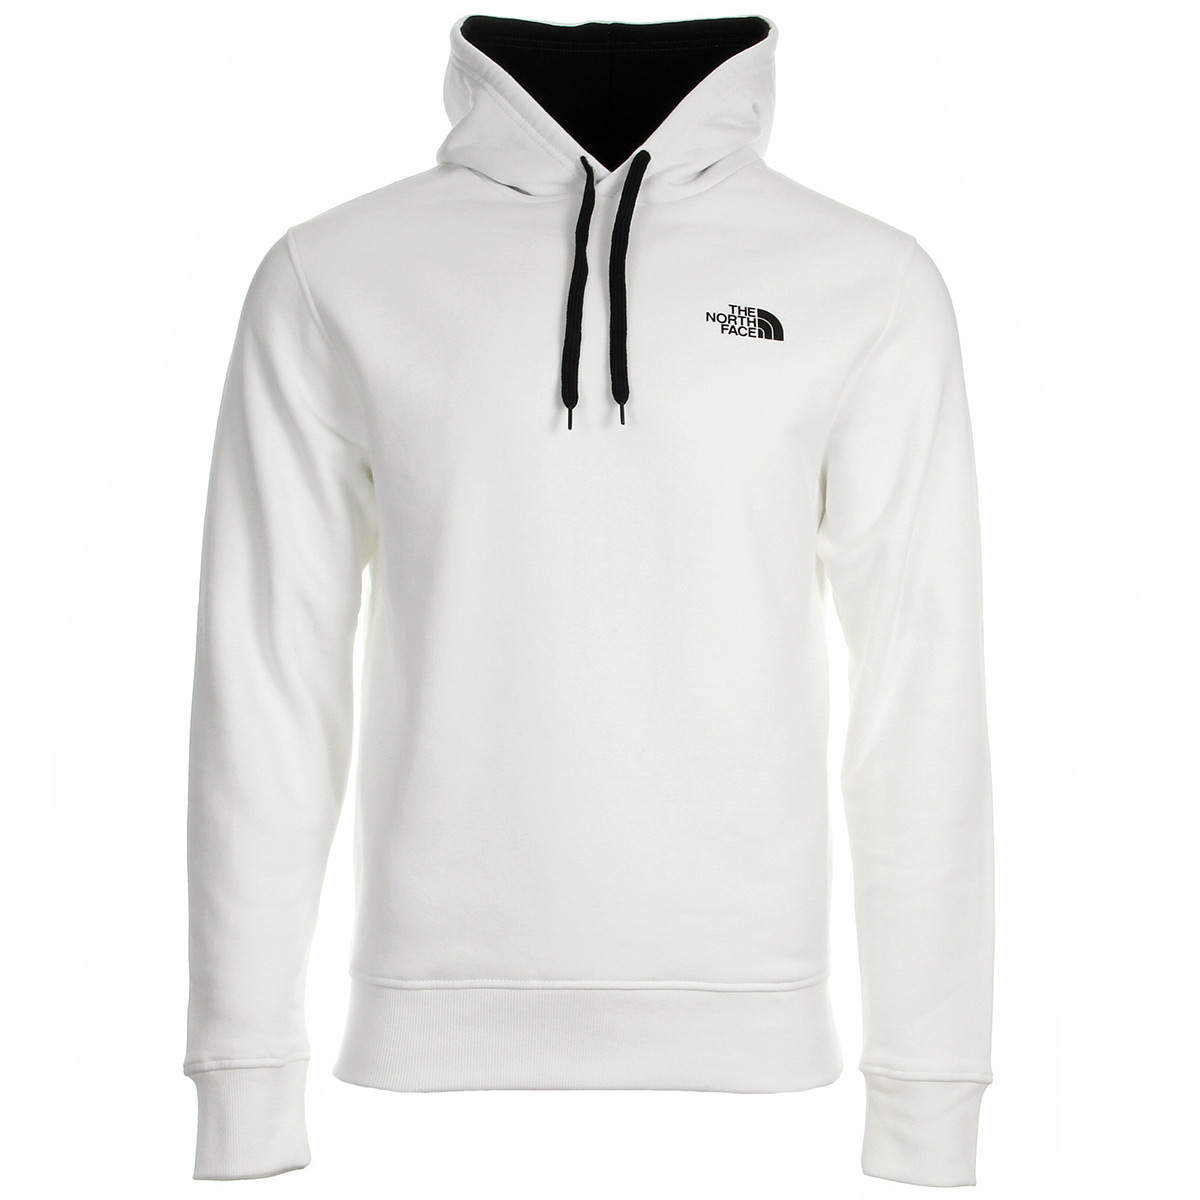 d703db7aea The North Face Seasonal Drew Peak Pullover Hoodie T92TUVLA9, Sweats ...